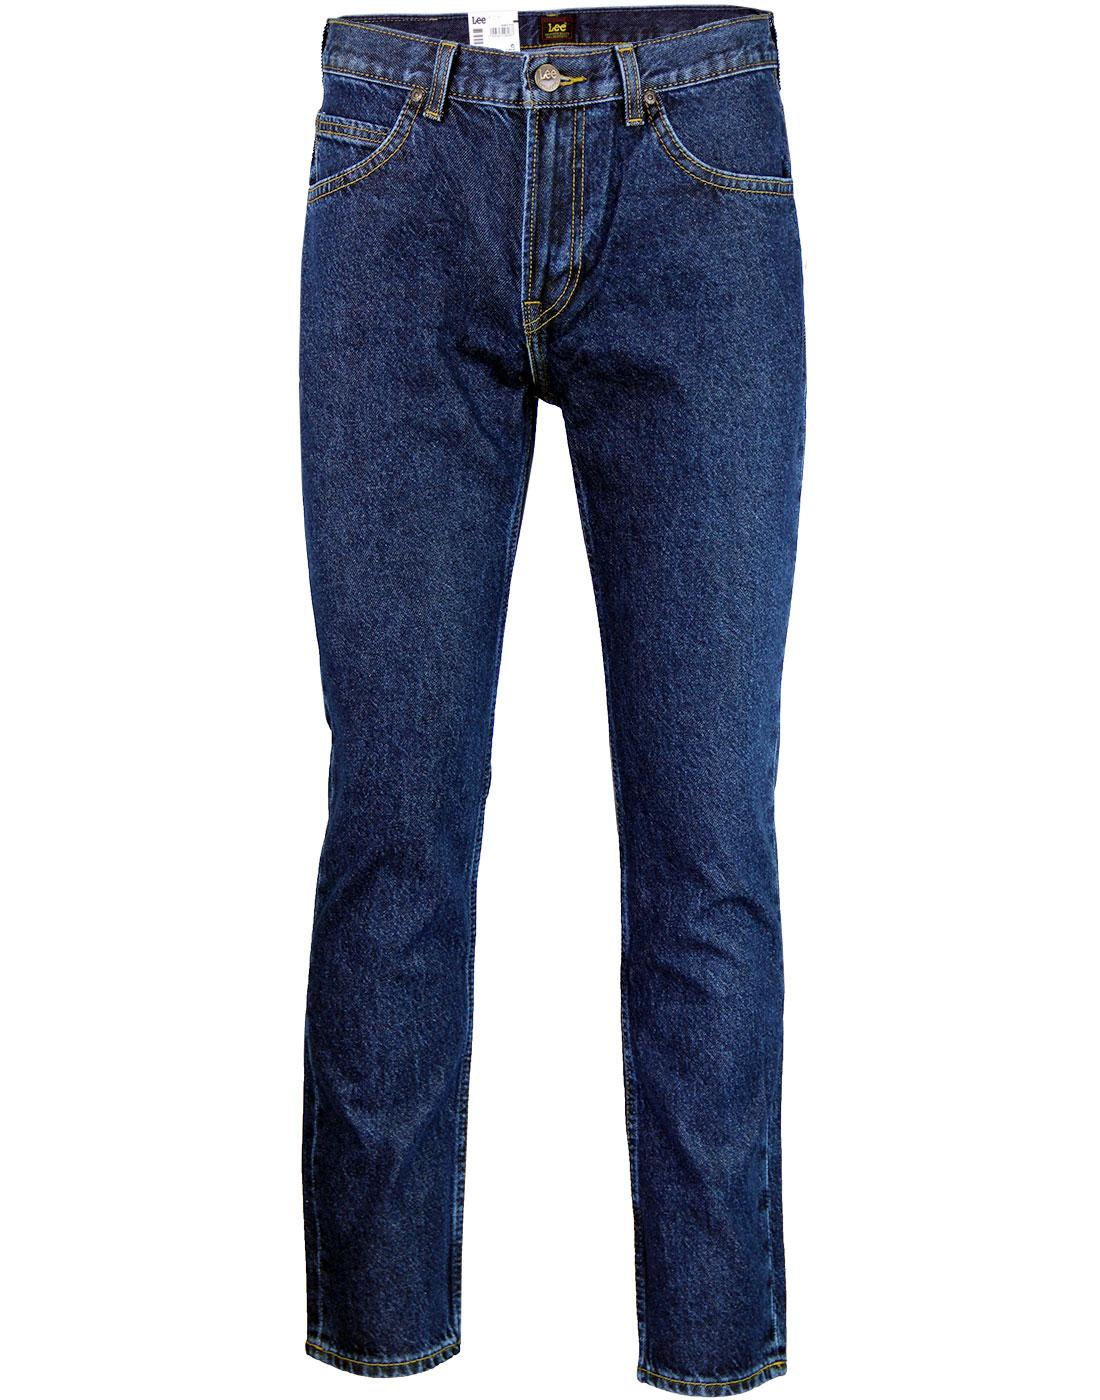 Lee Rider Womens Jeans